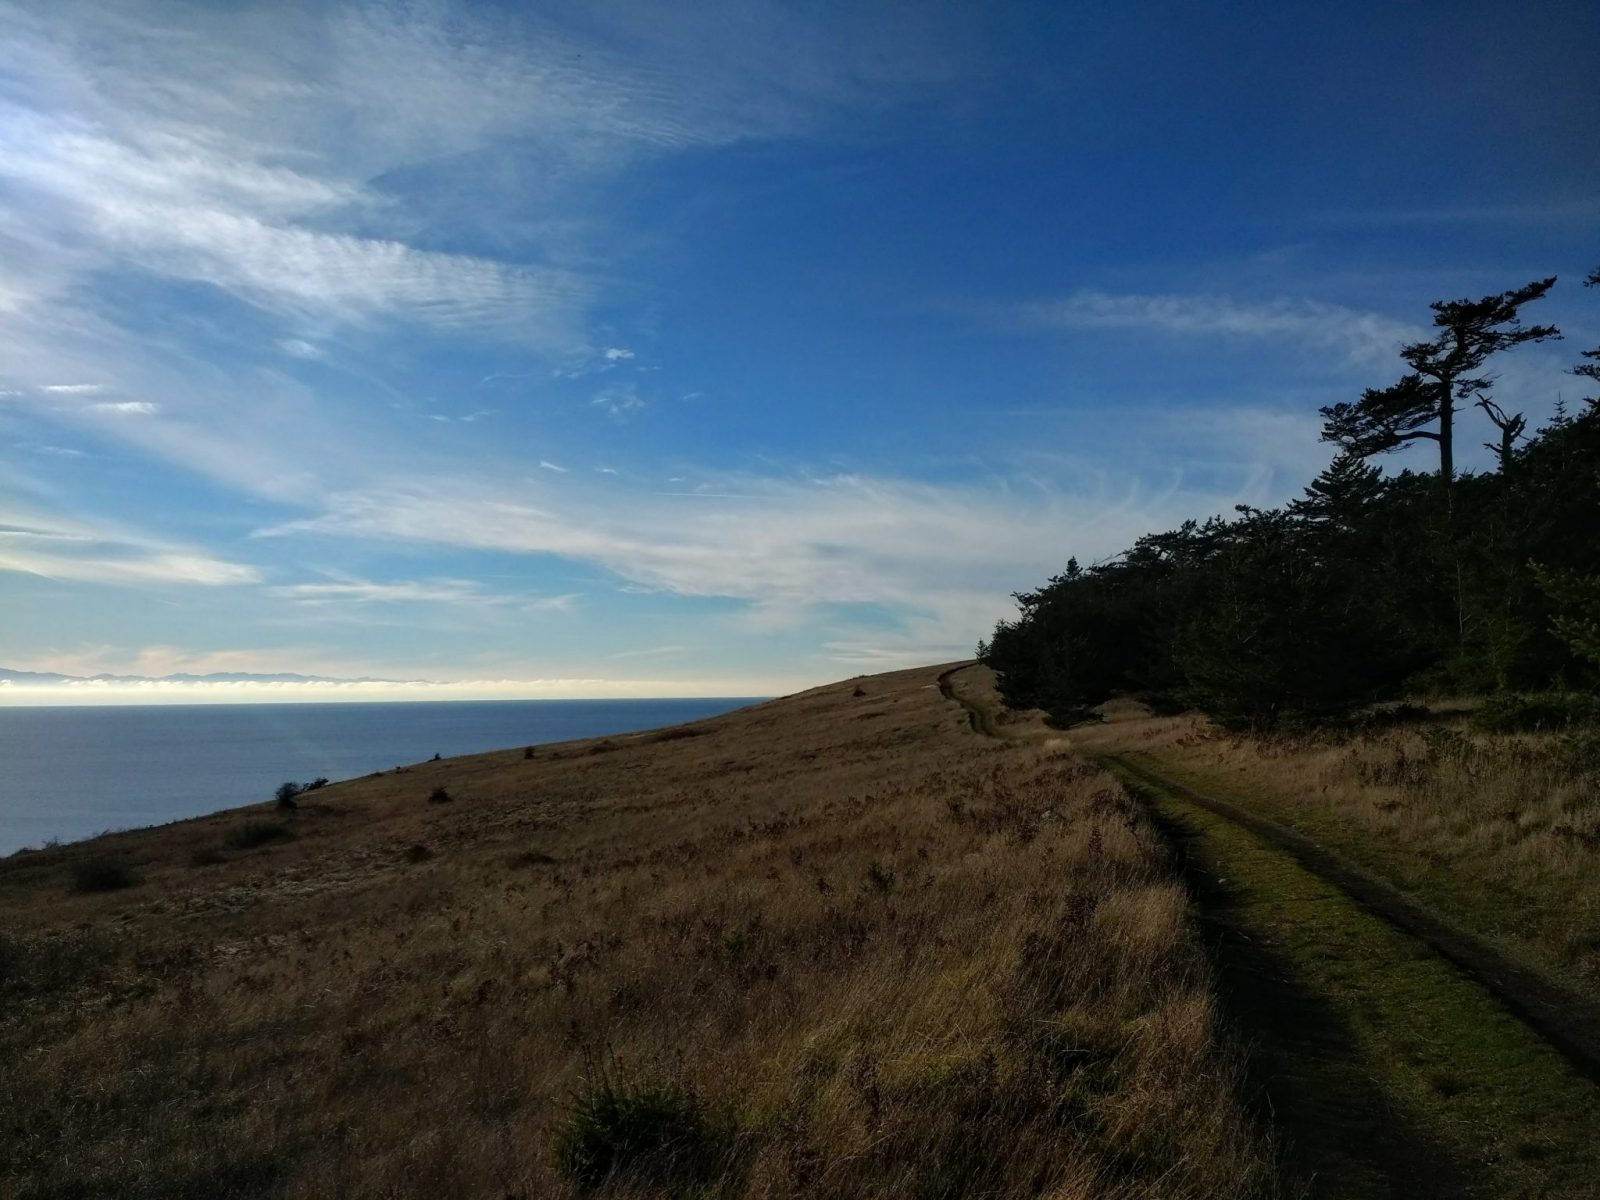 An excellent spring hike near Seattle, the Mt Finlayson trail on San Juan Island. The trail is wide, like an abandoned road, and crosses a grassy field between a forest and the water below.